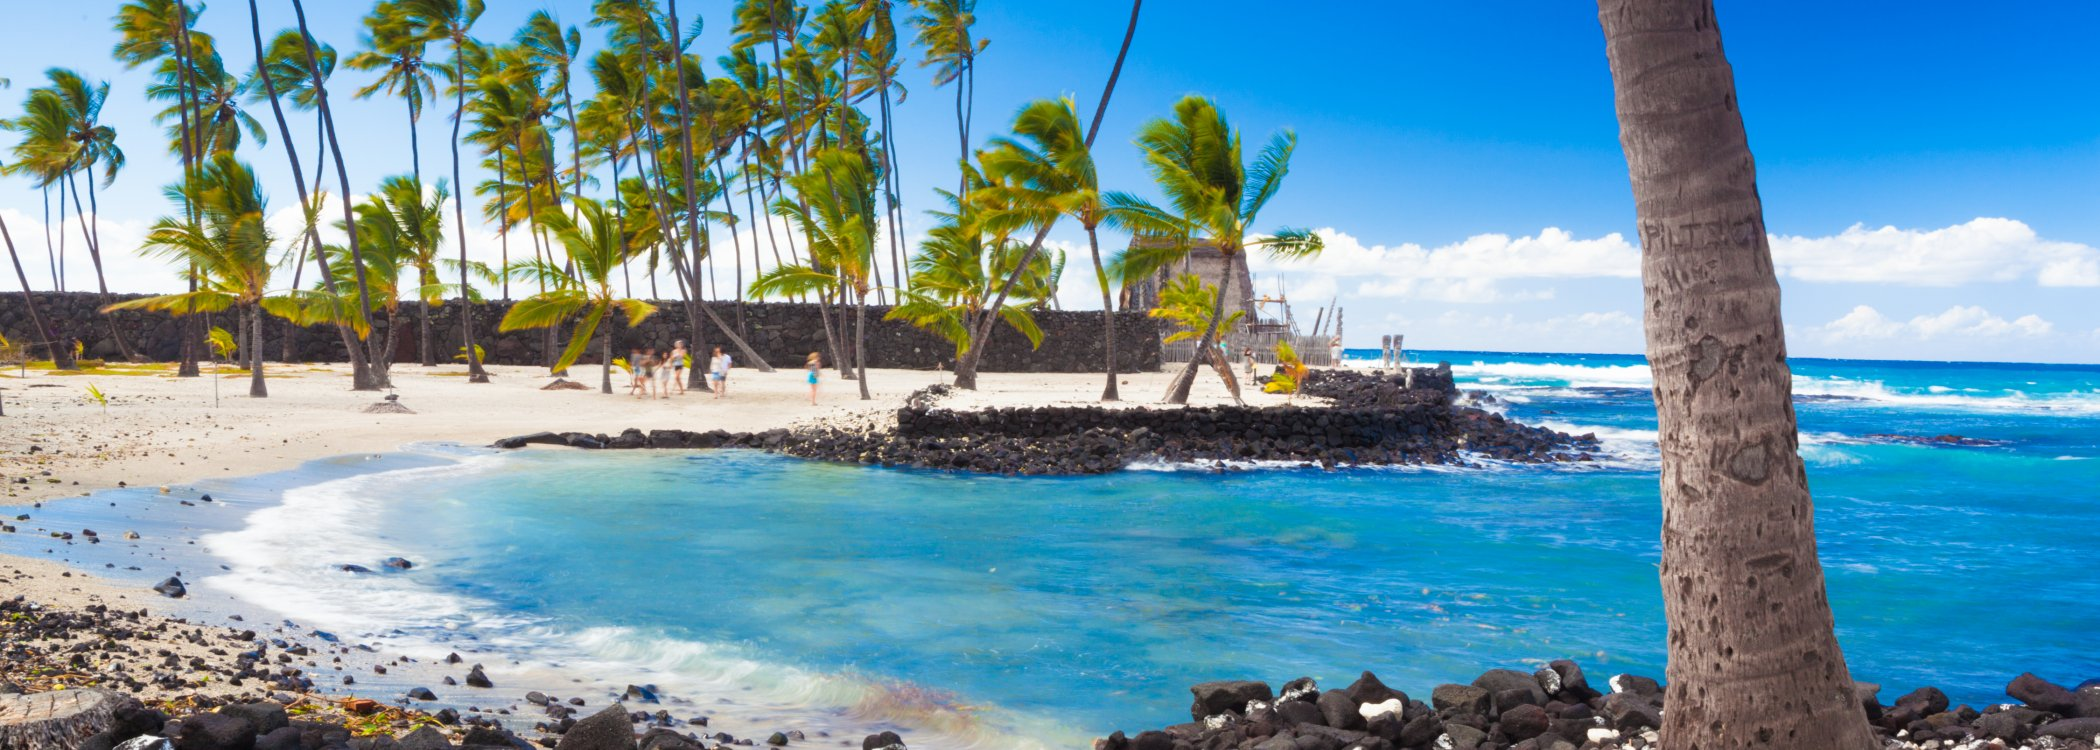 Big Island Of Hawaii Attractions